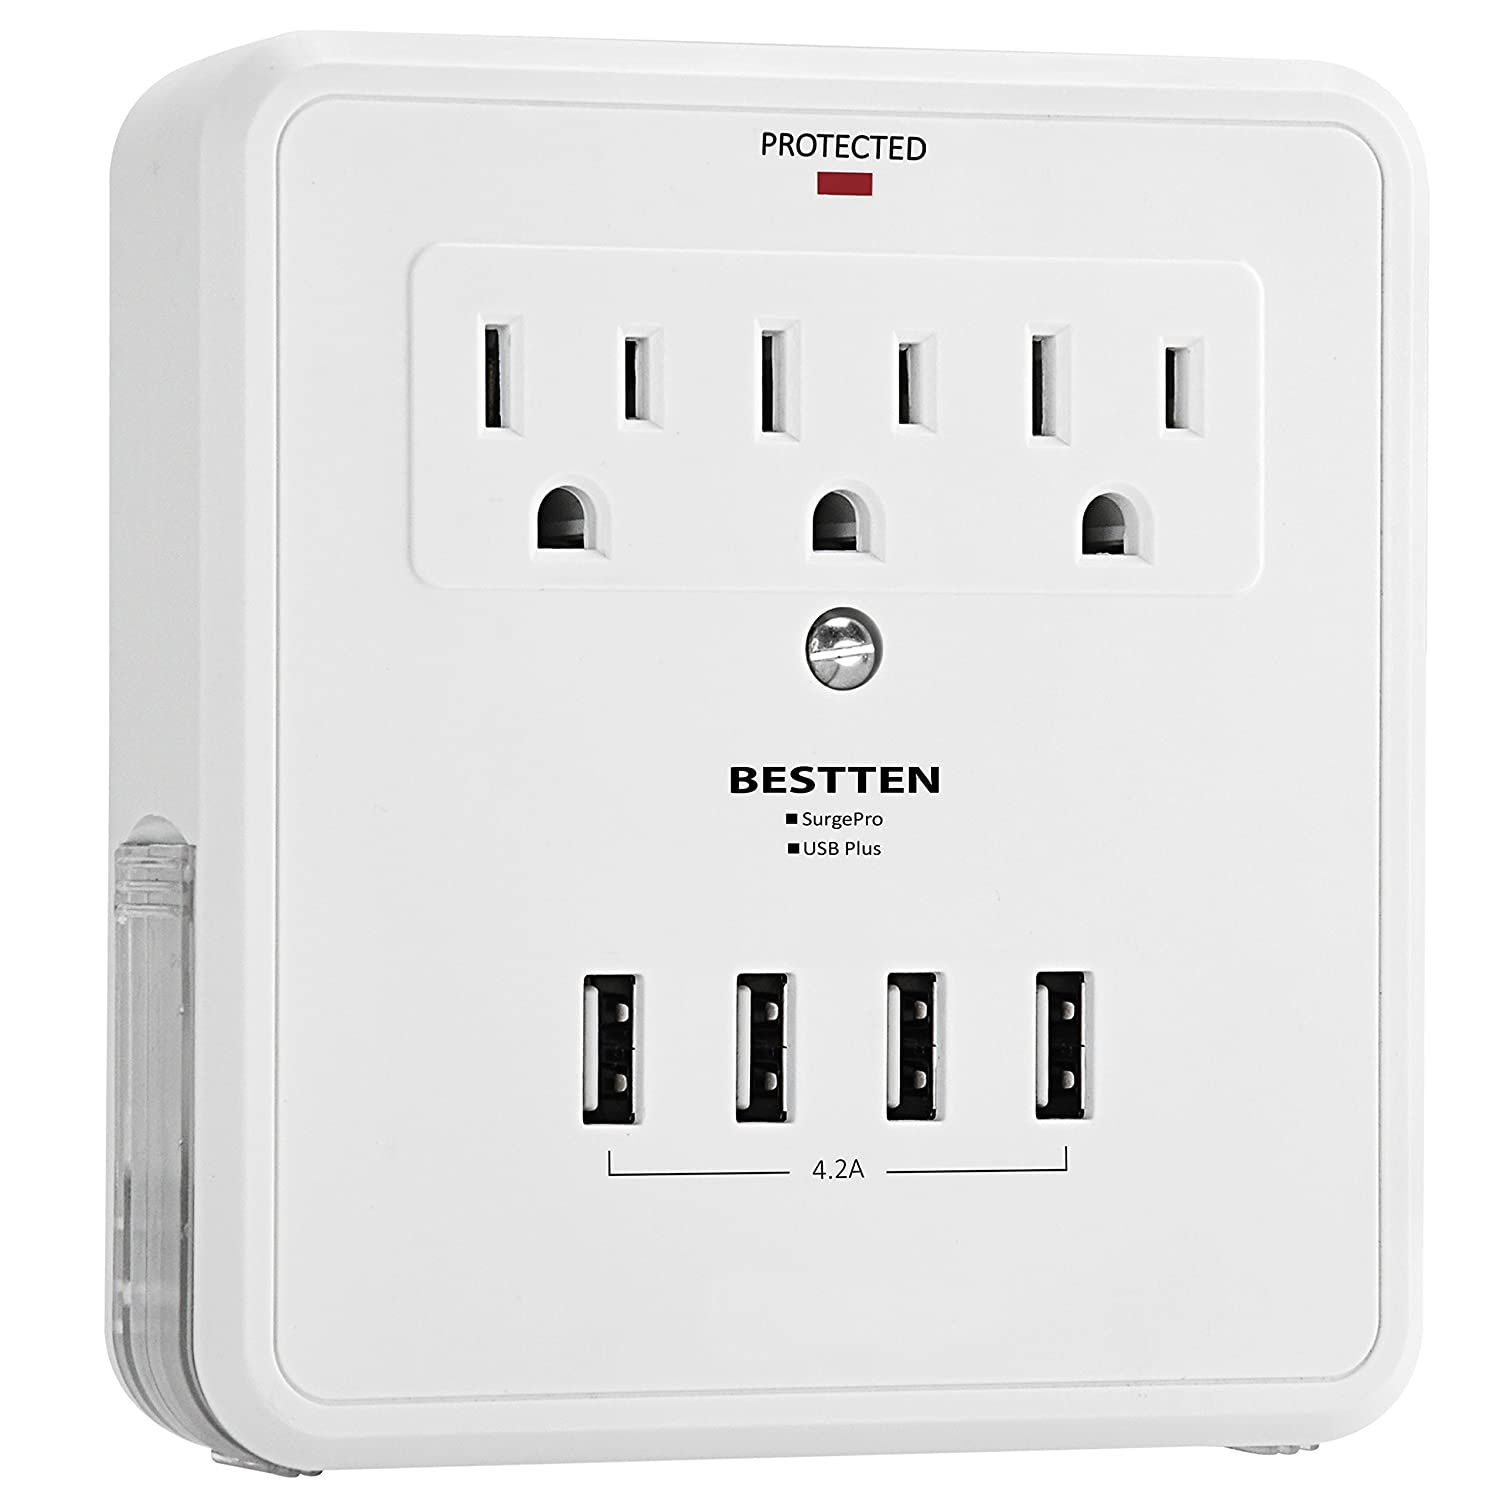 Bestten Multi Outlet Wall Mount Adapter Surge Protector with Four (4) USB Charging Ports, 3 Electrical Outlet Extenders and 2 Slide Out Phone Holders